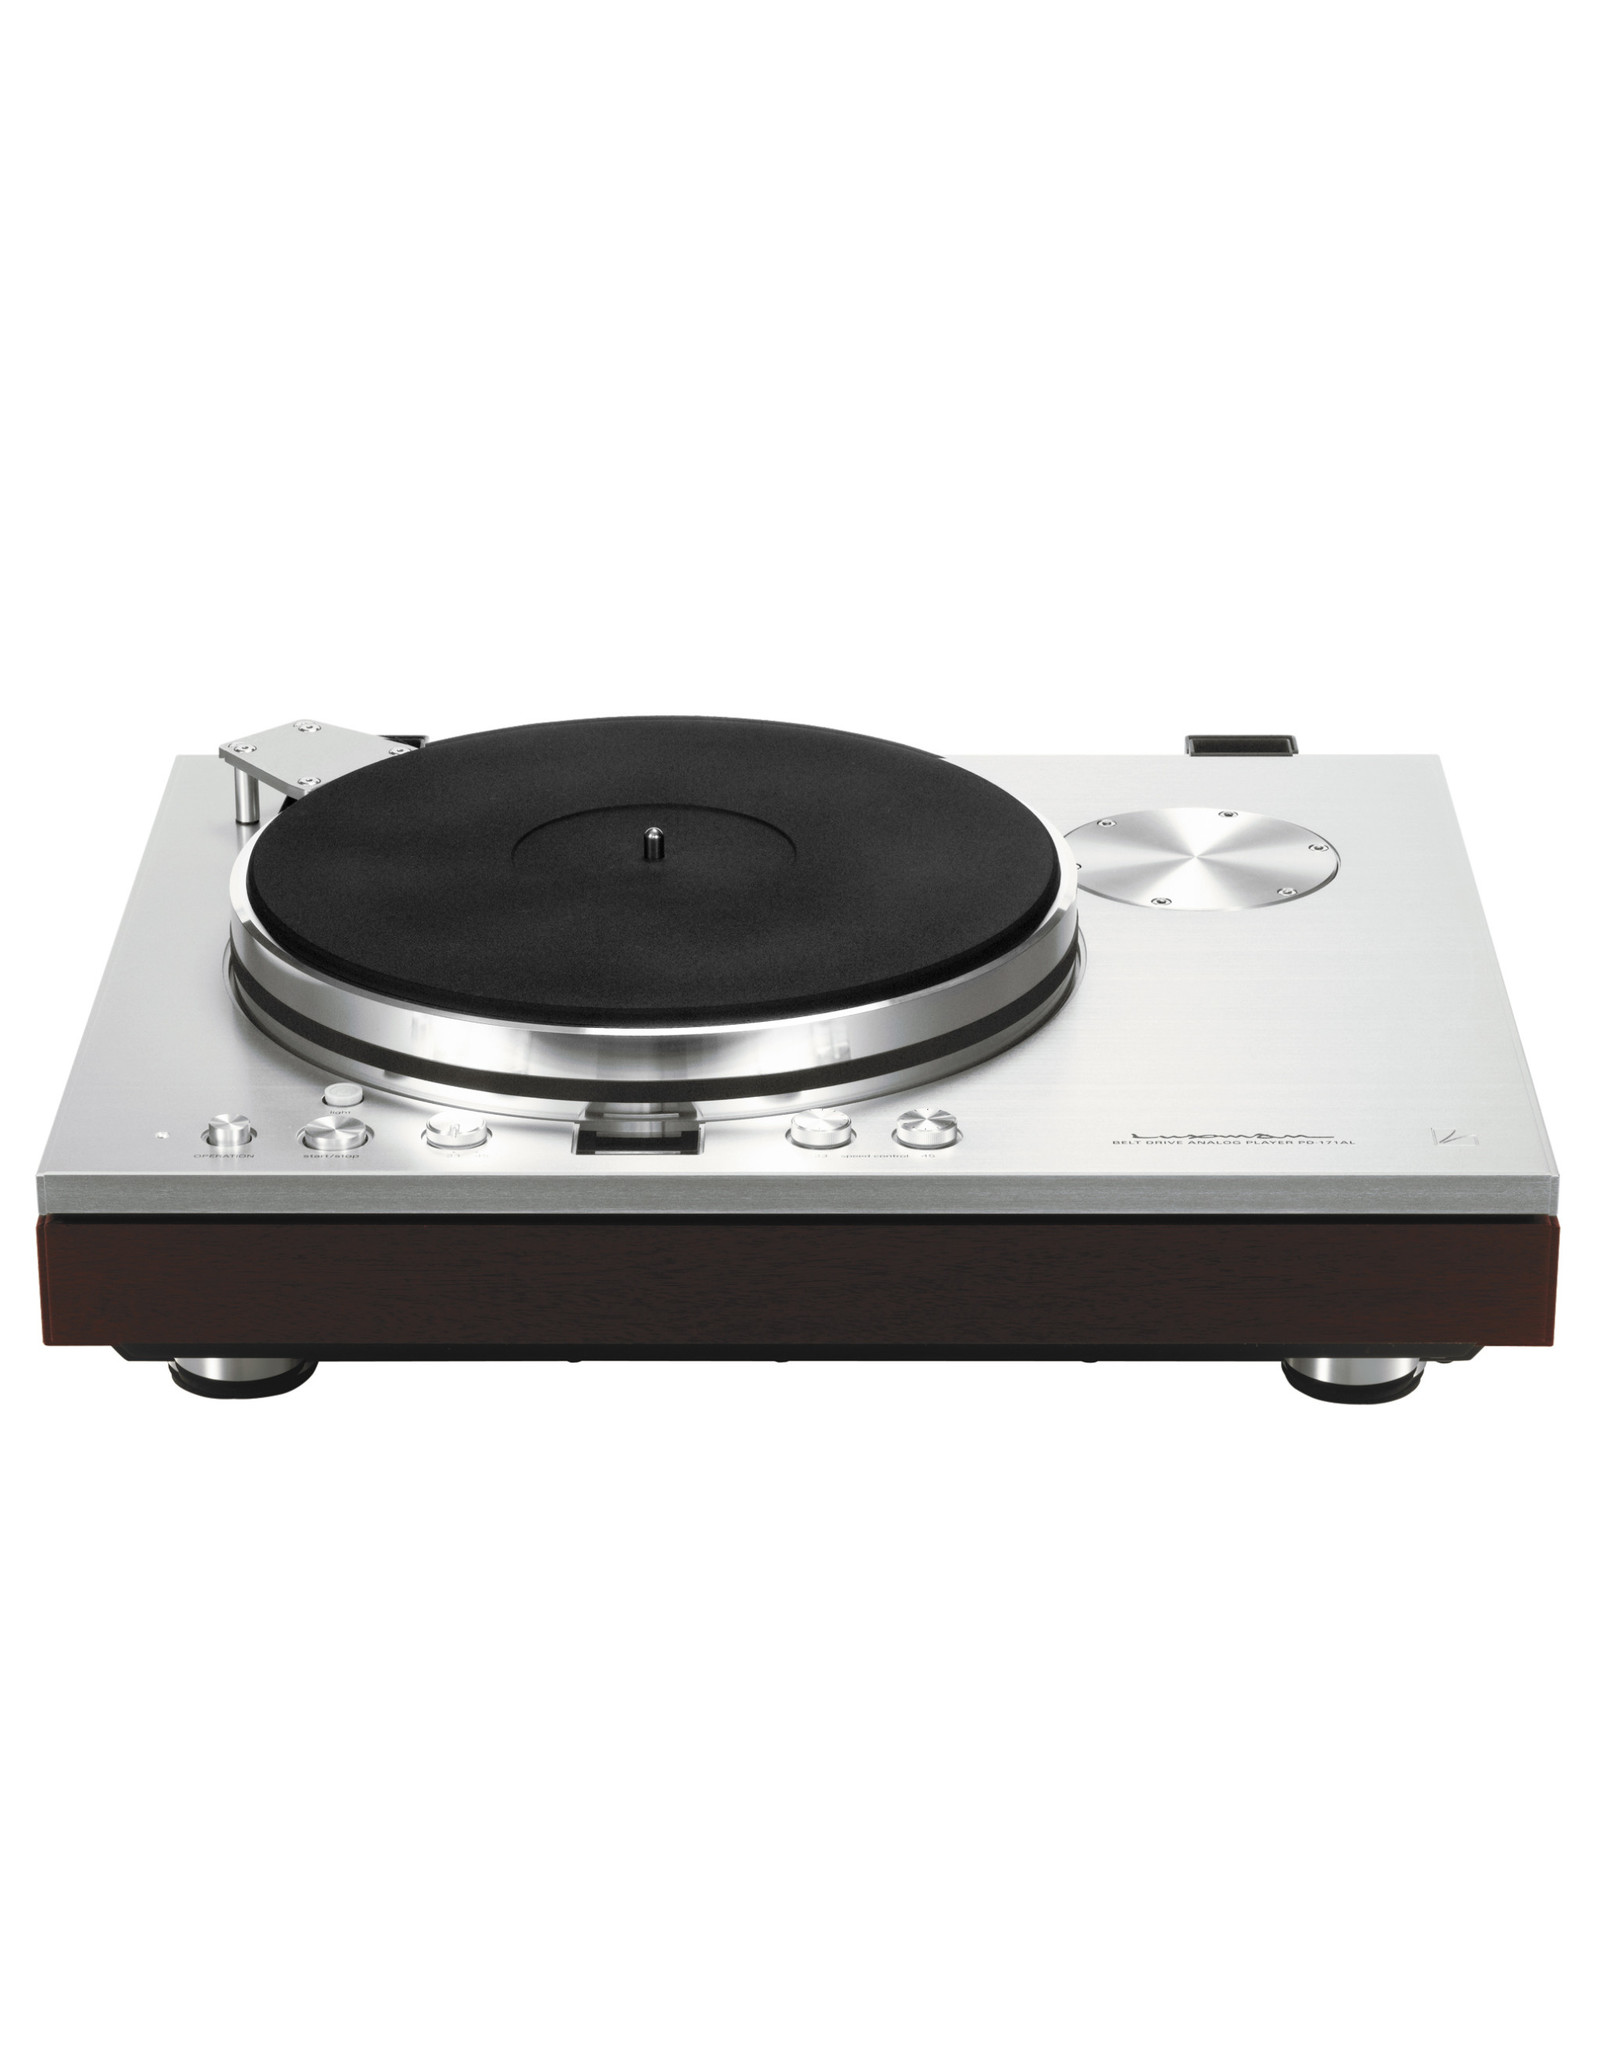 Luxman Luxman PD-171AL Turntable (No Tonearm)